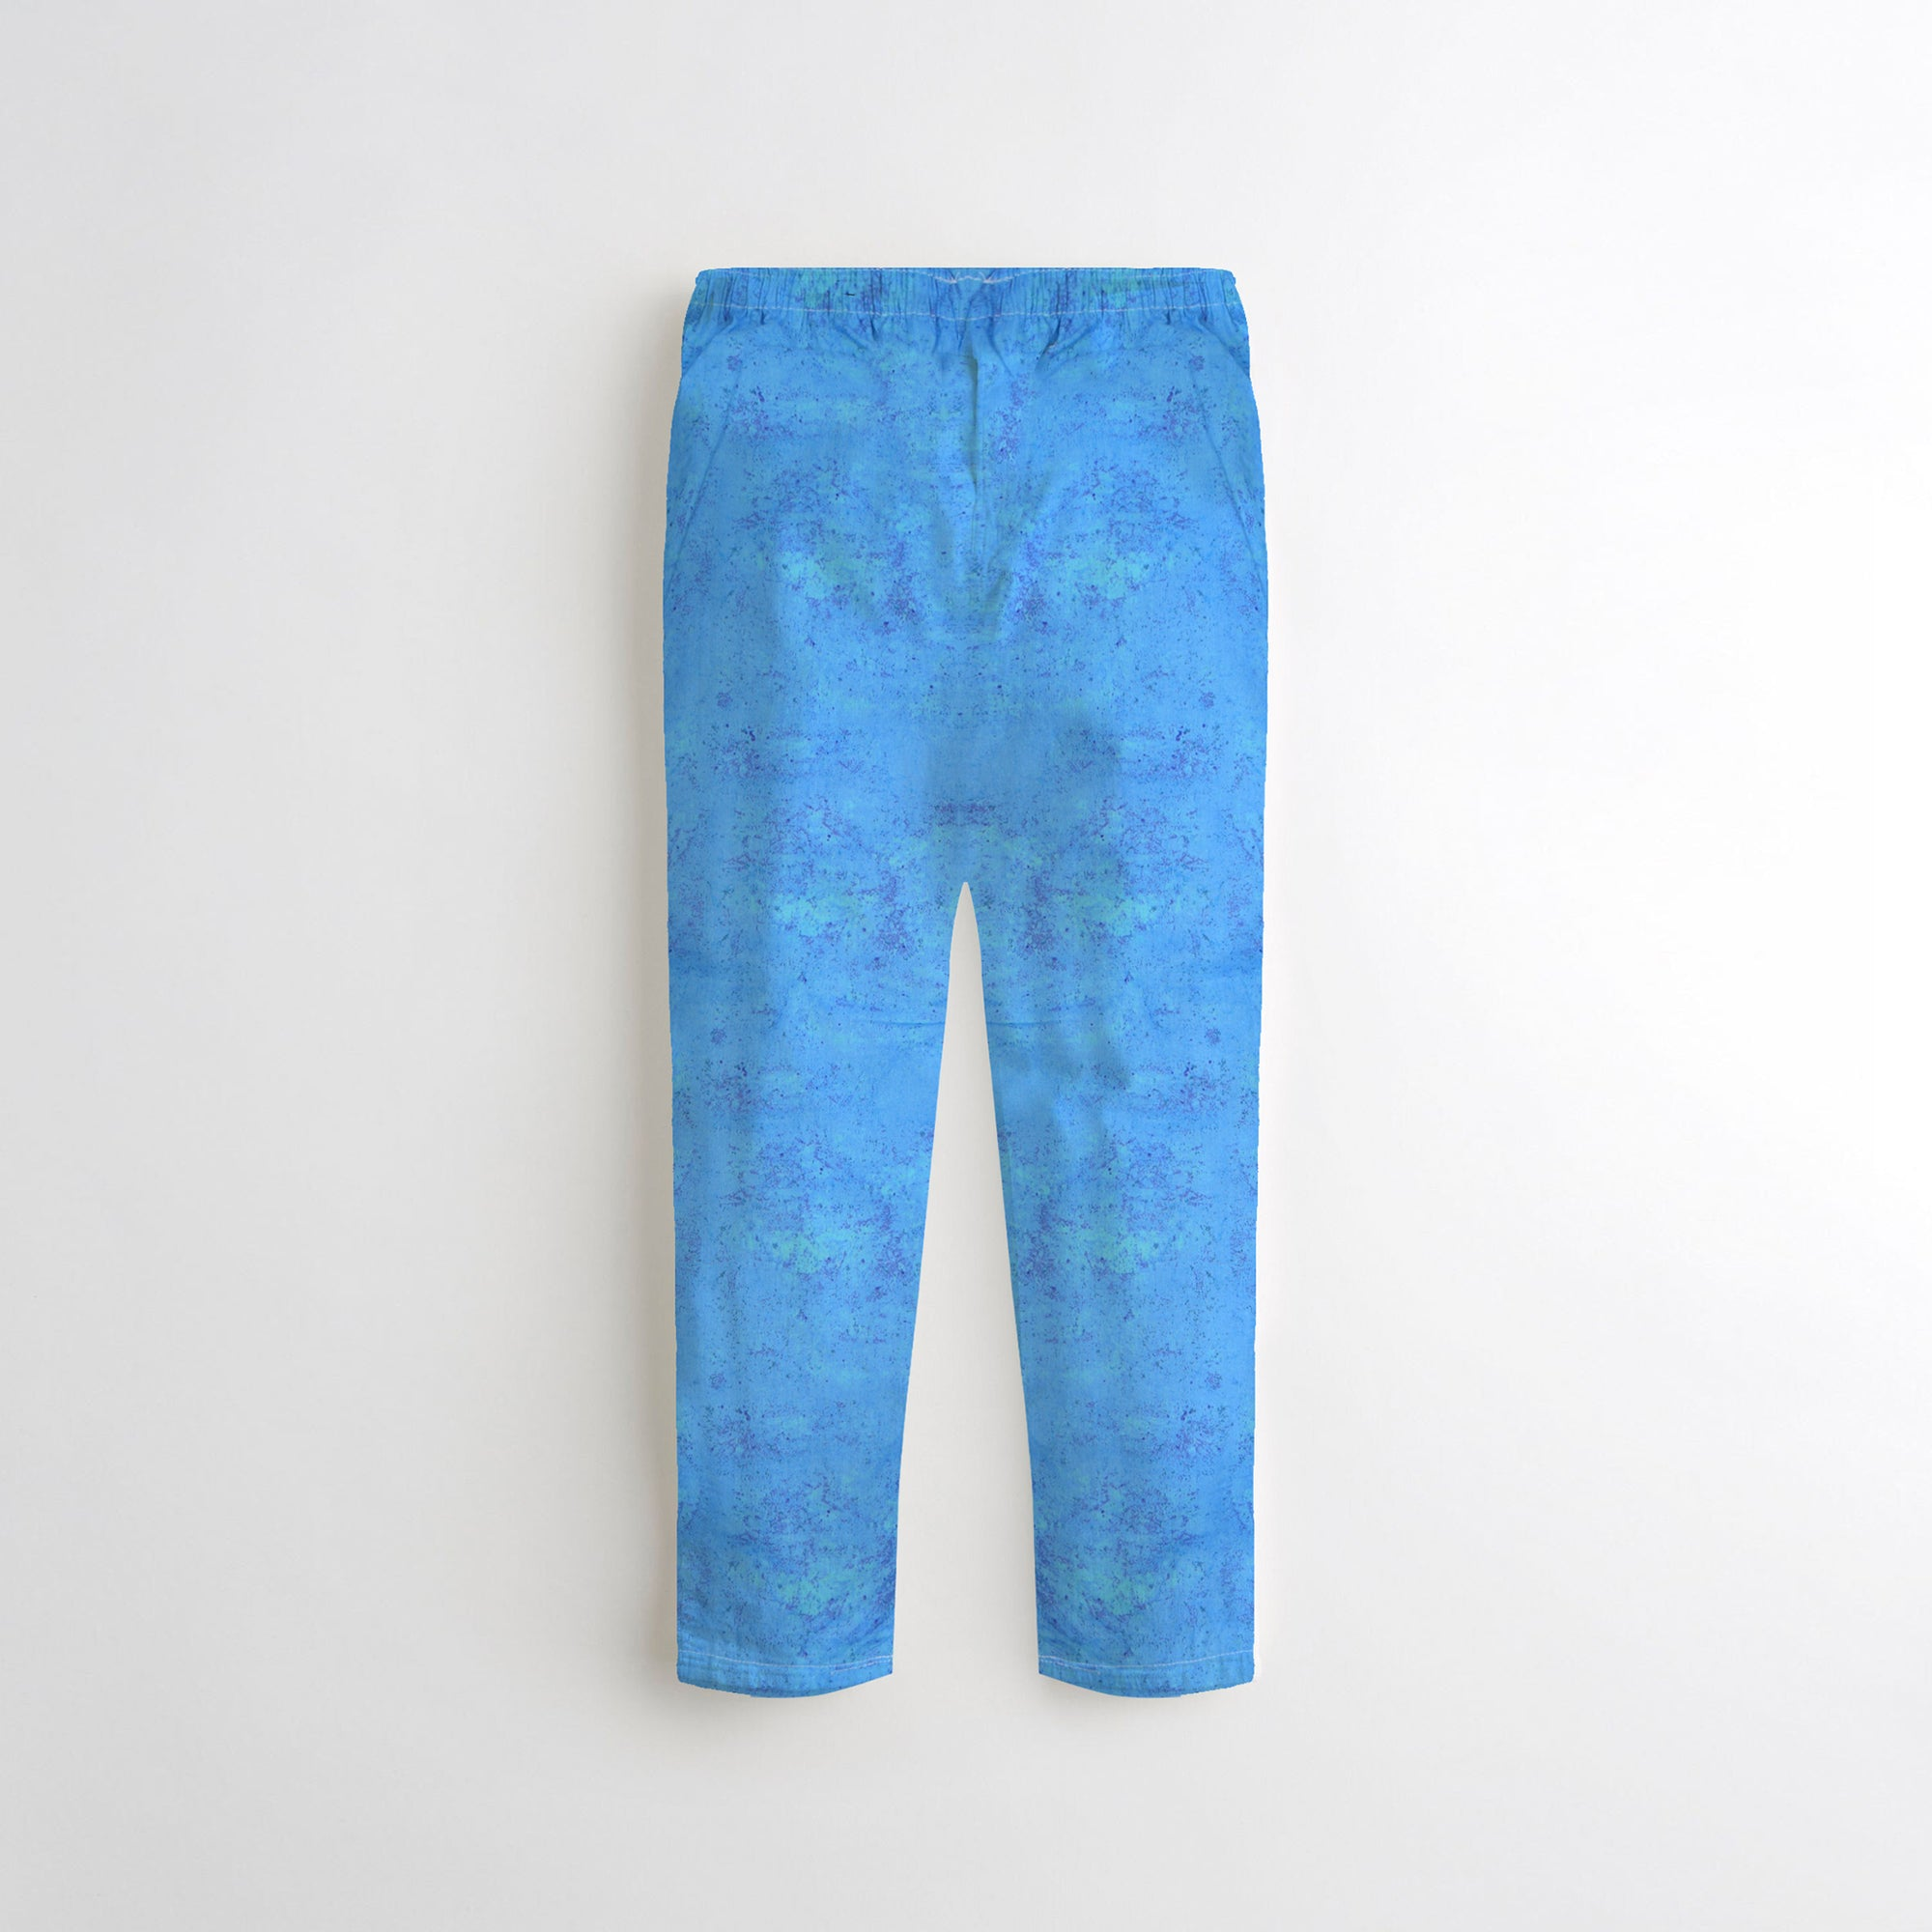 Next Straight Fit Cotton Trouser For Kids-All Over Printed-NA8860